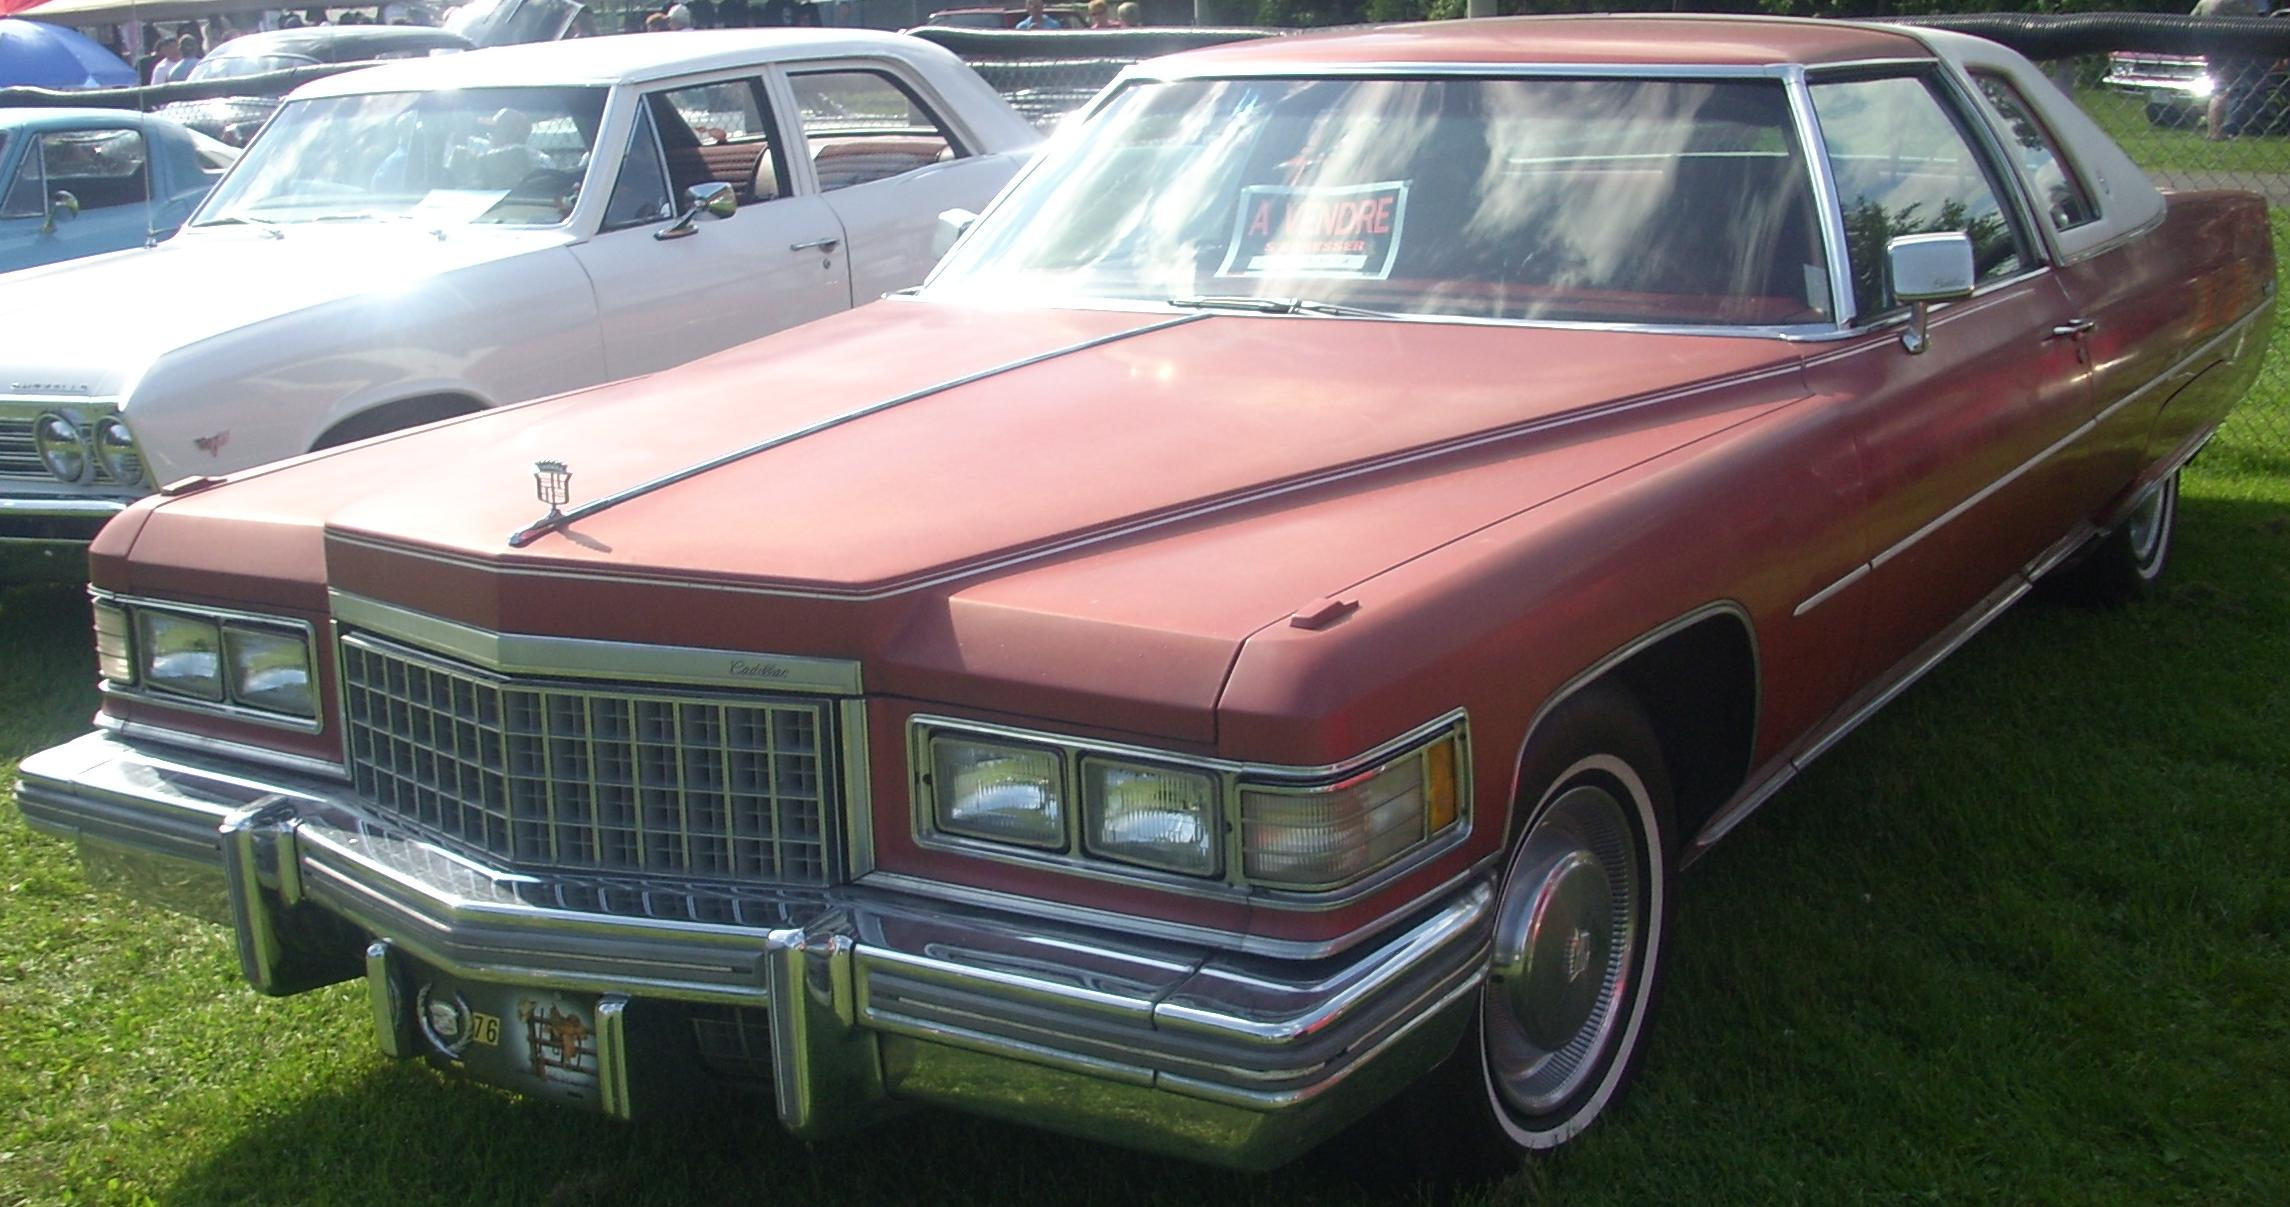 File:'75 Cadillac Coupe de Ville (Rigaud).jpg - Wikimedia Commons